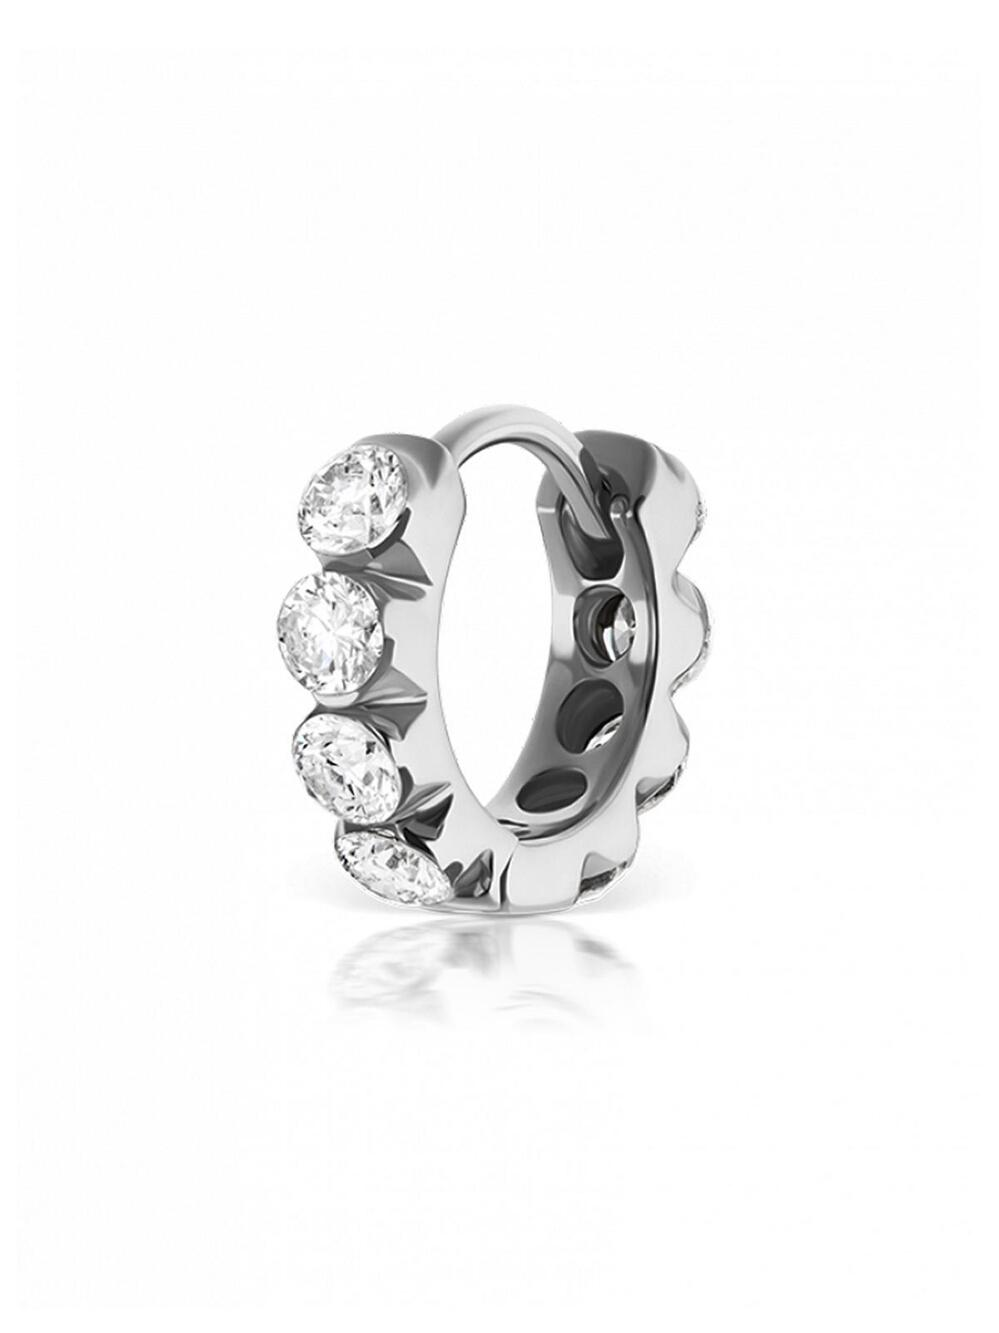 Maria Tash Invisibly Set Diamond Eternity Ring 18kt gold and diamond earring 1l7GyNgWIv